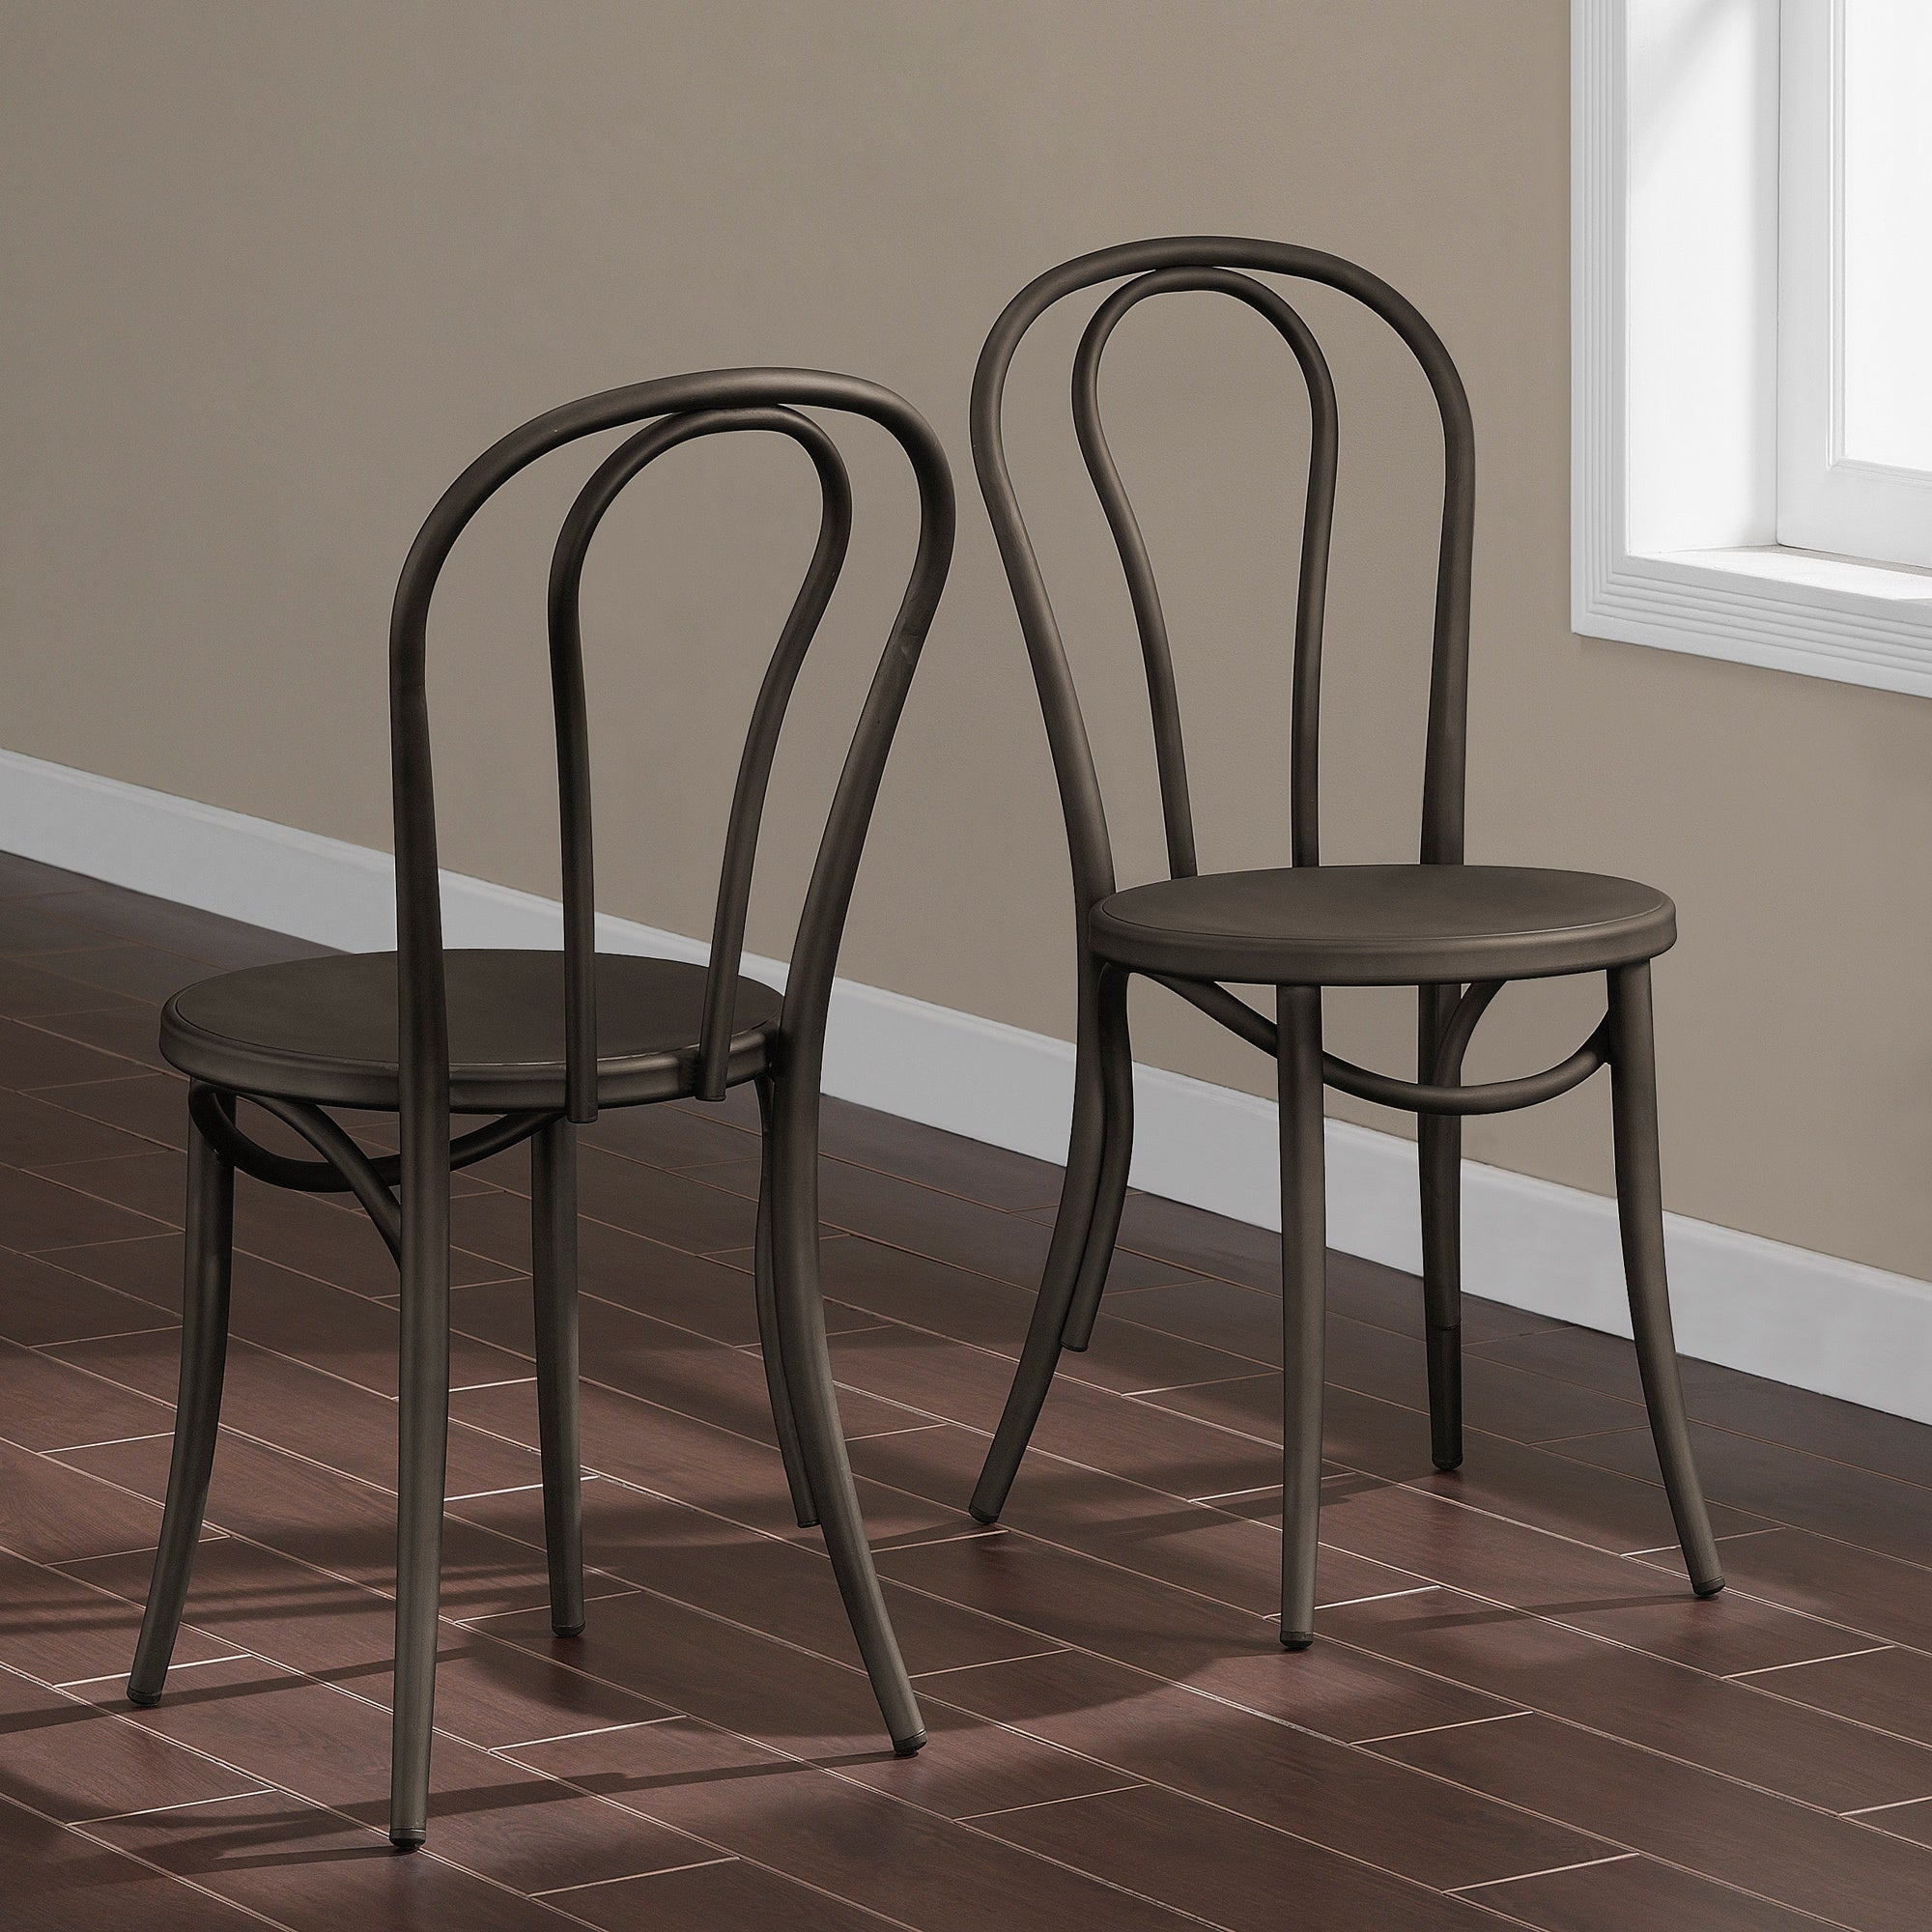 alfa img showing antique french metal chairs